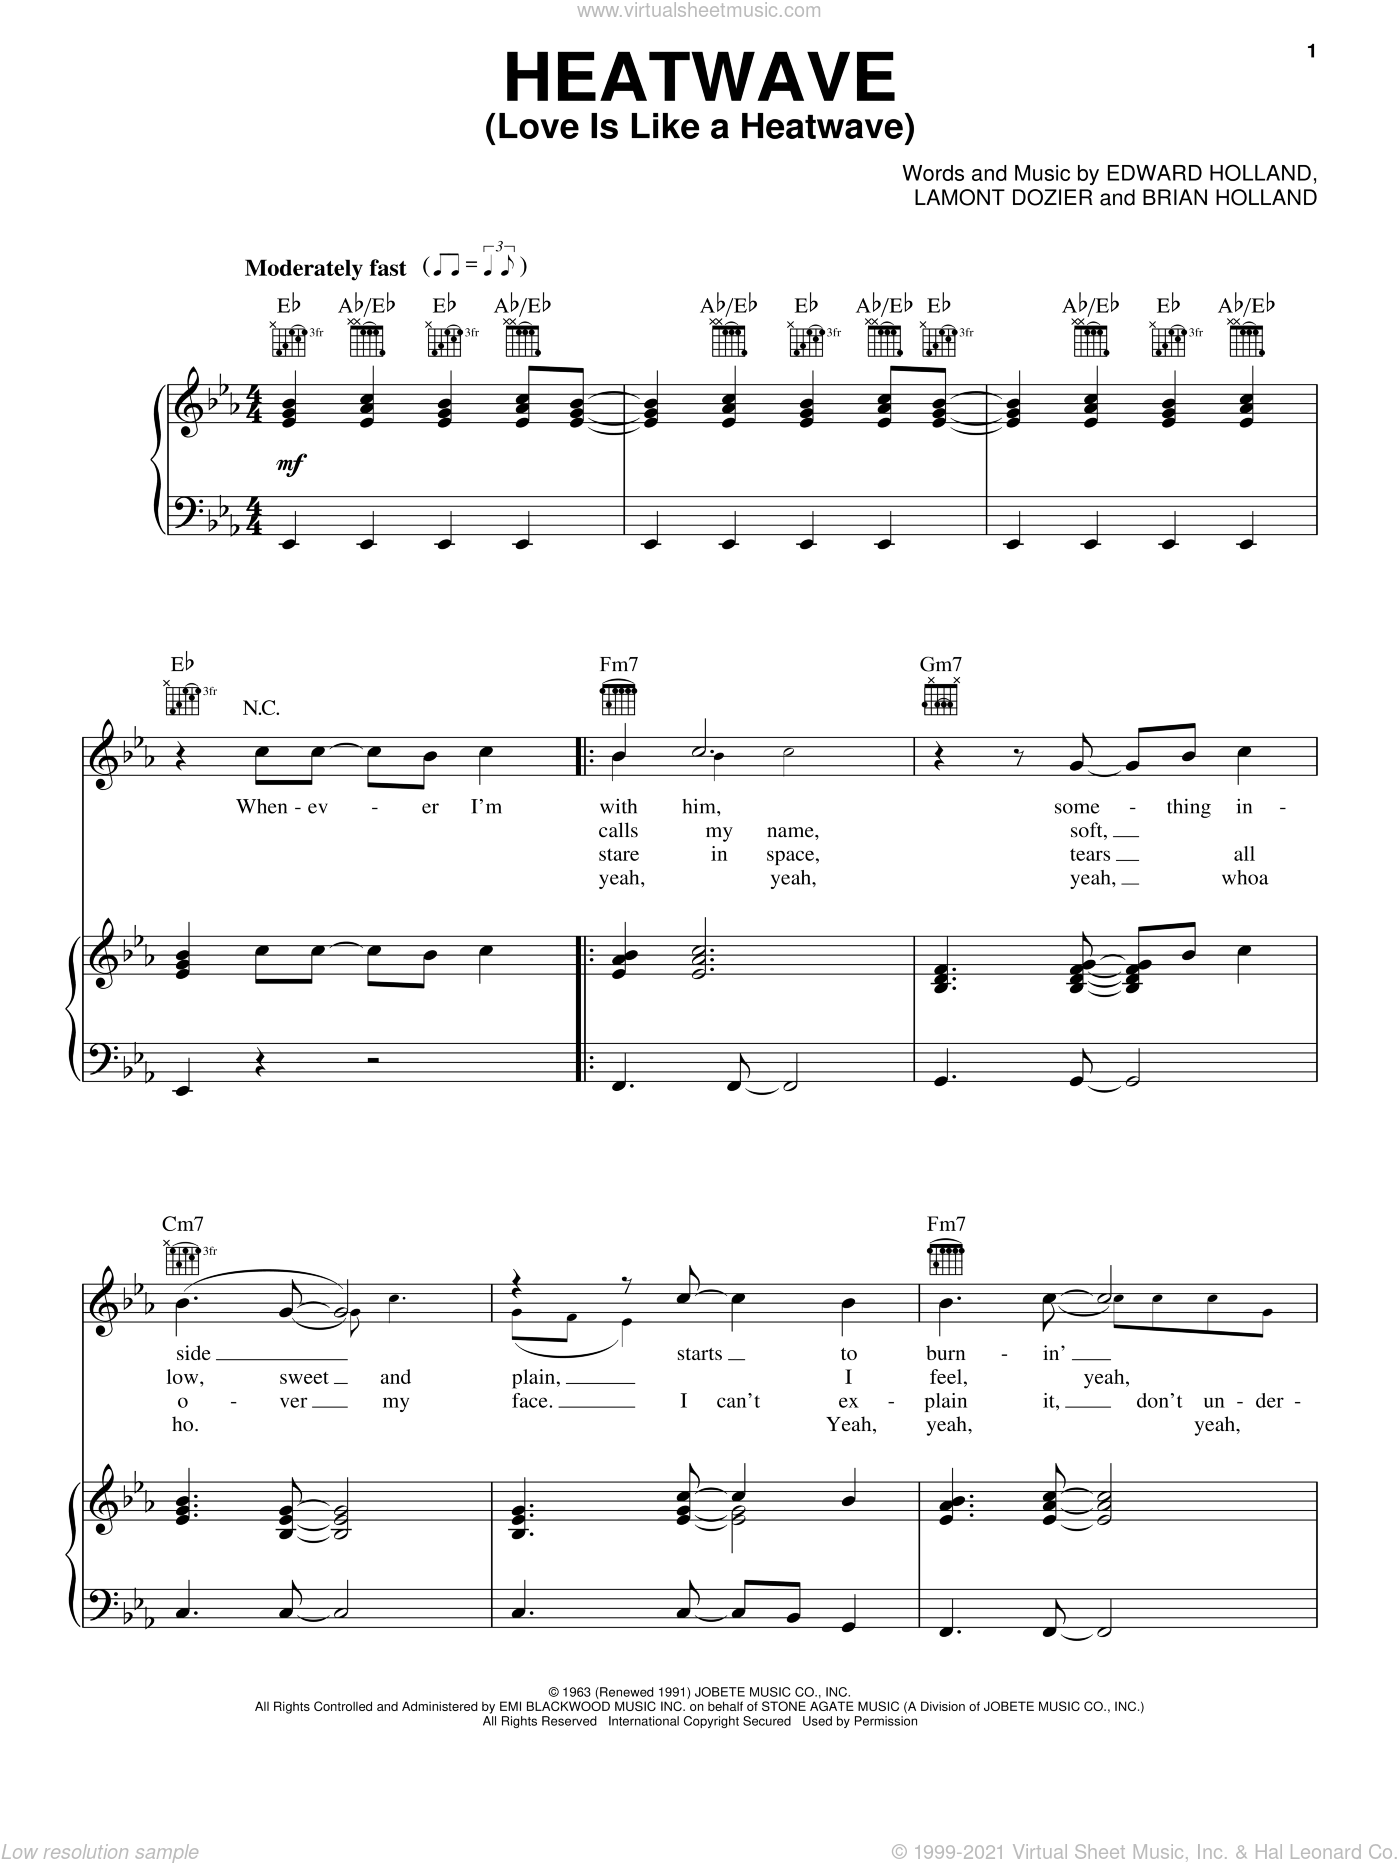 Heatwave (Love Is Like A Heatwave) sheet music for voice, piano or guitar by Lamont Dozier